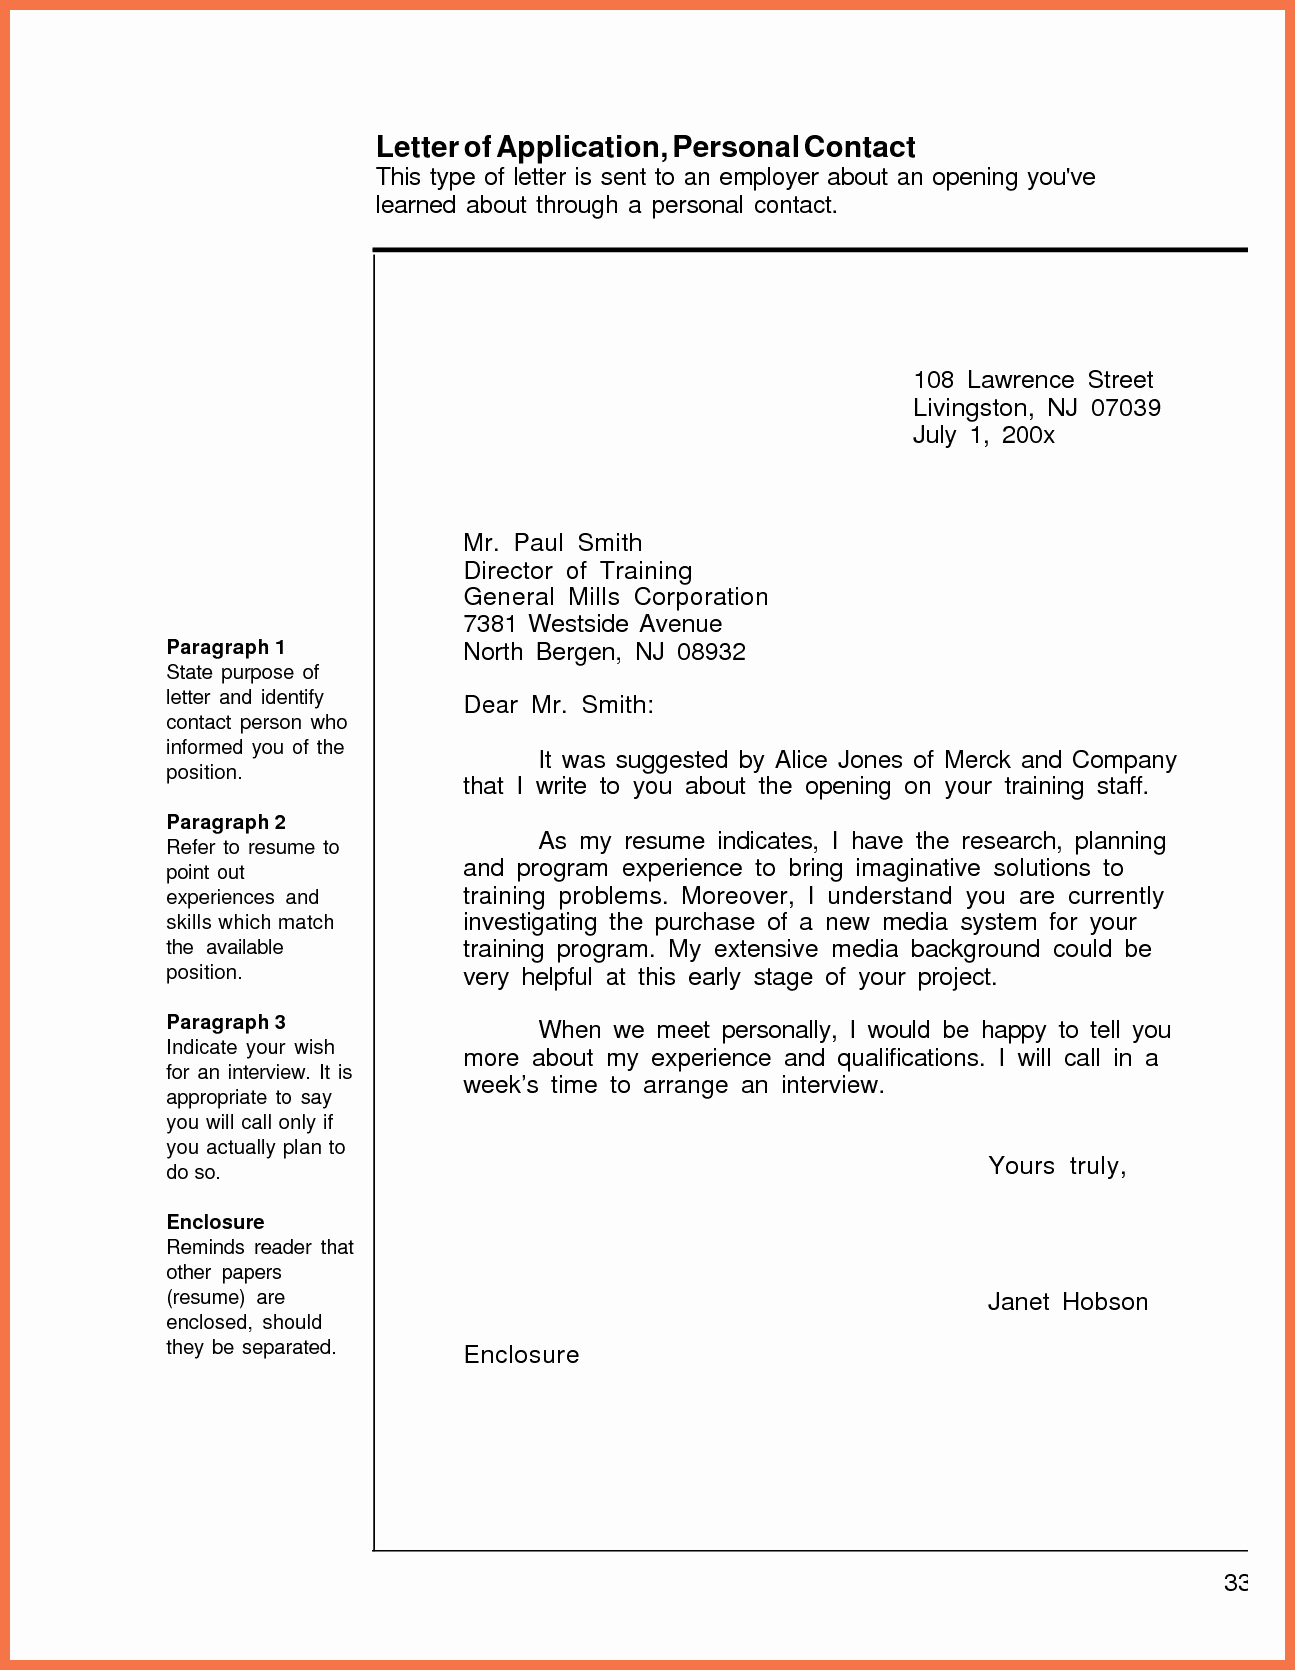 Personal Letter format Examples Luxury Personal Letter format